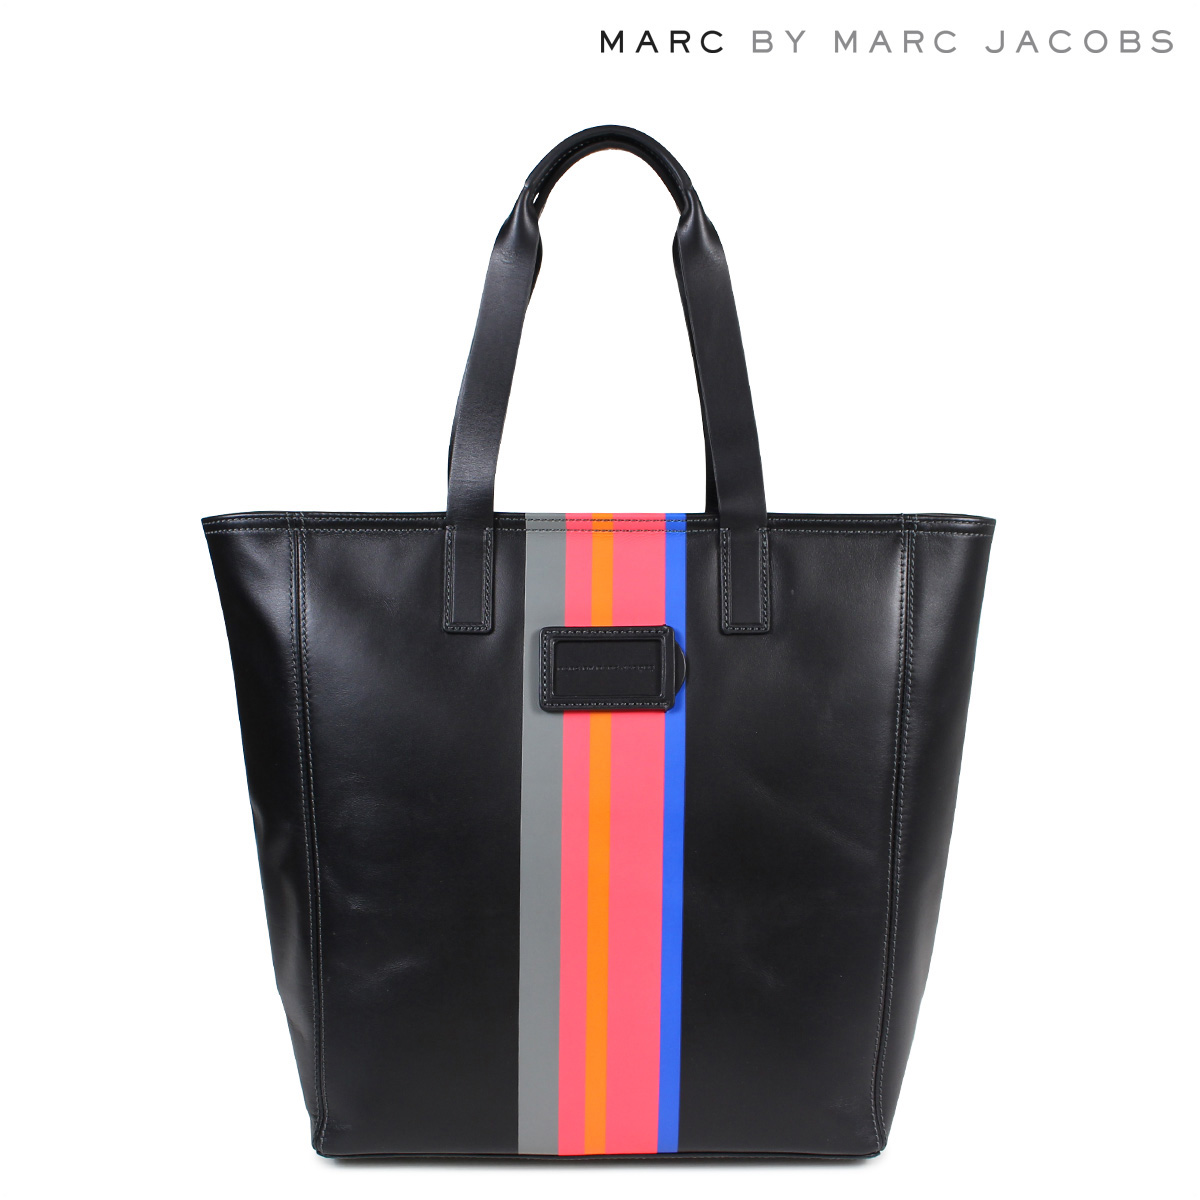 MARC BY MARC JACOBS LEATHER TOTE マークバイマークジェイコブス トートバッグ バッグ レディース M0005704 ブラック